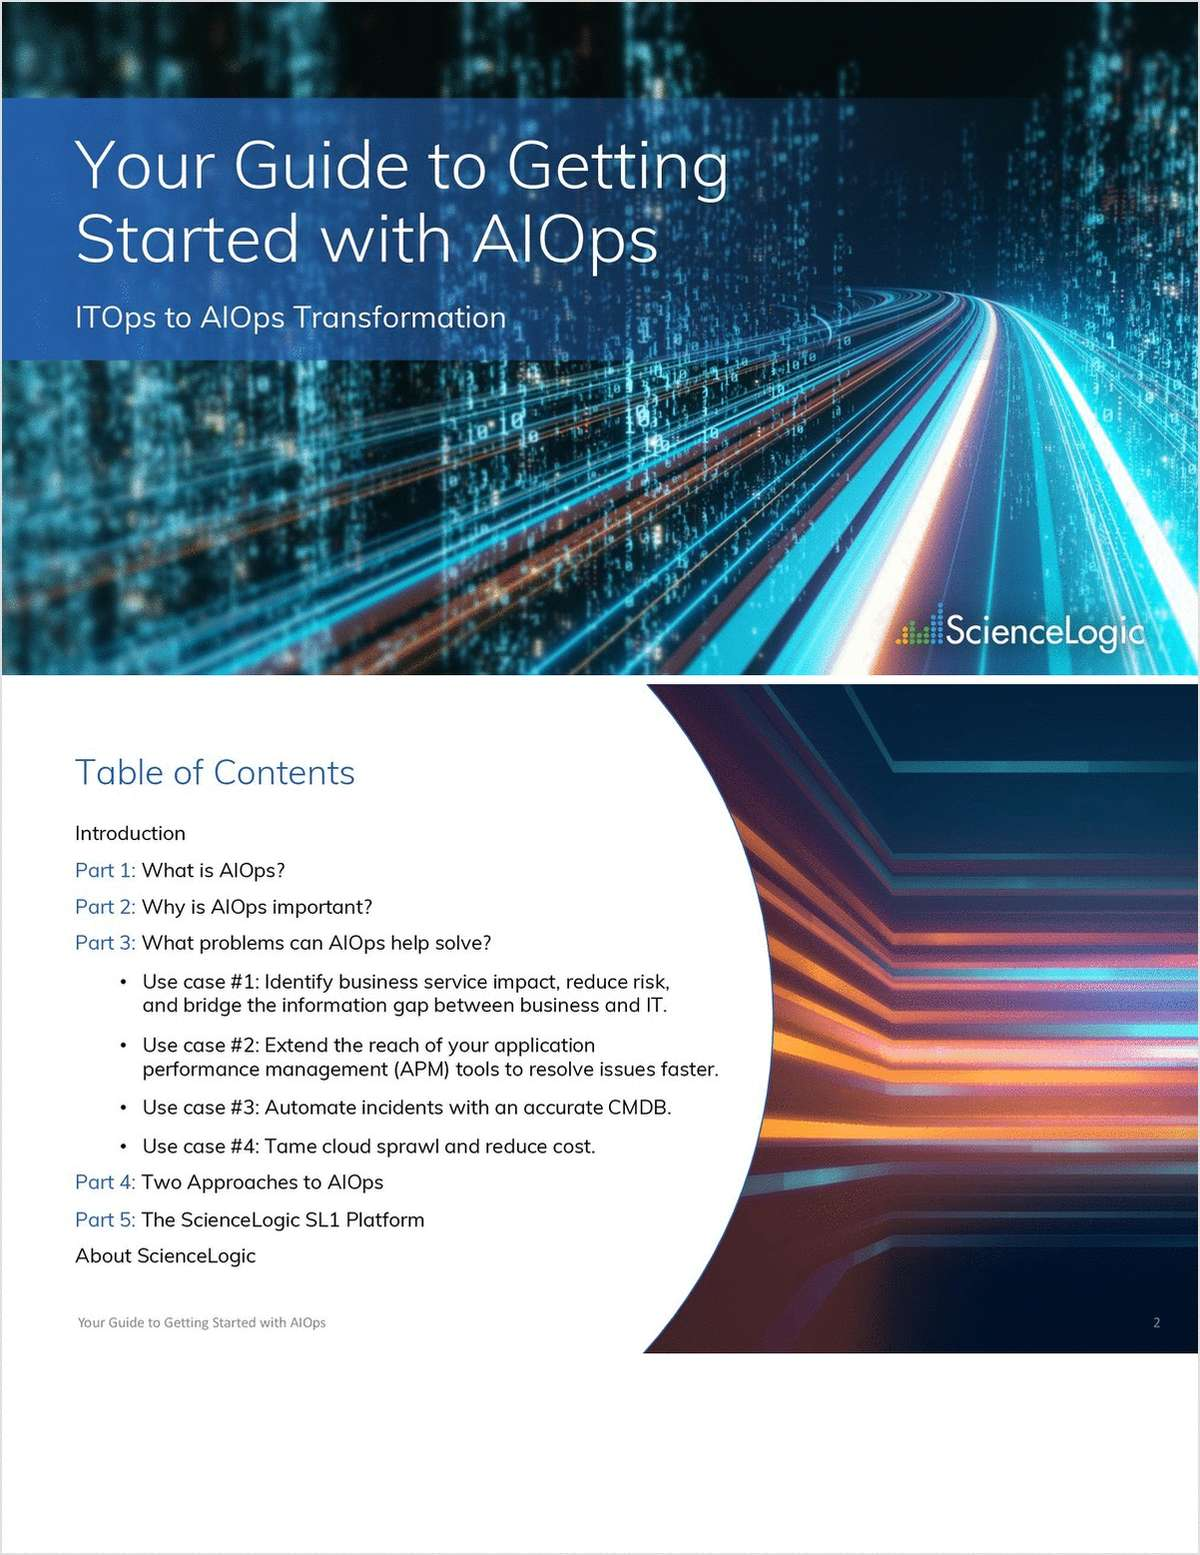 Your Guide to Getting Started with AIOps